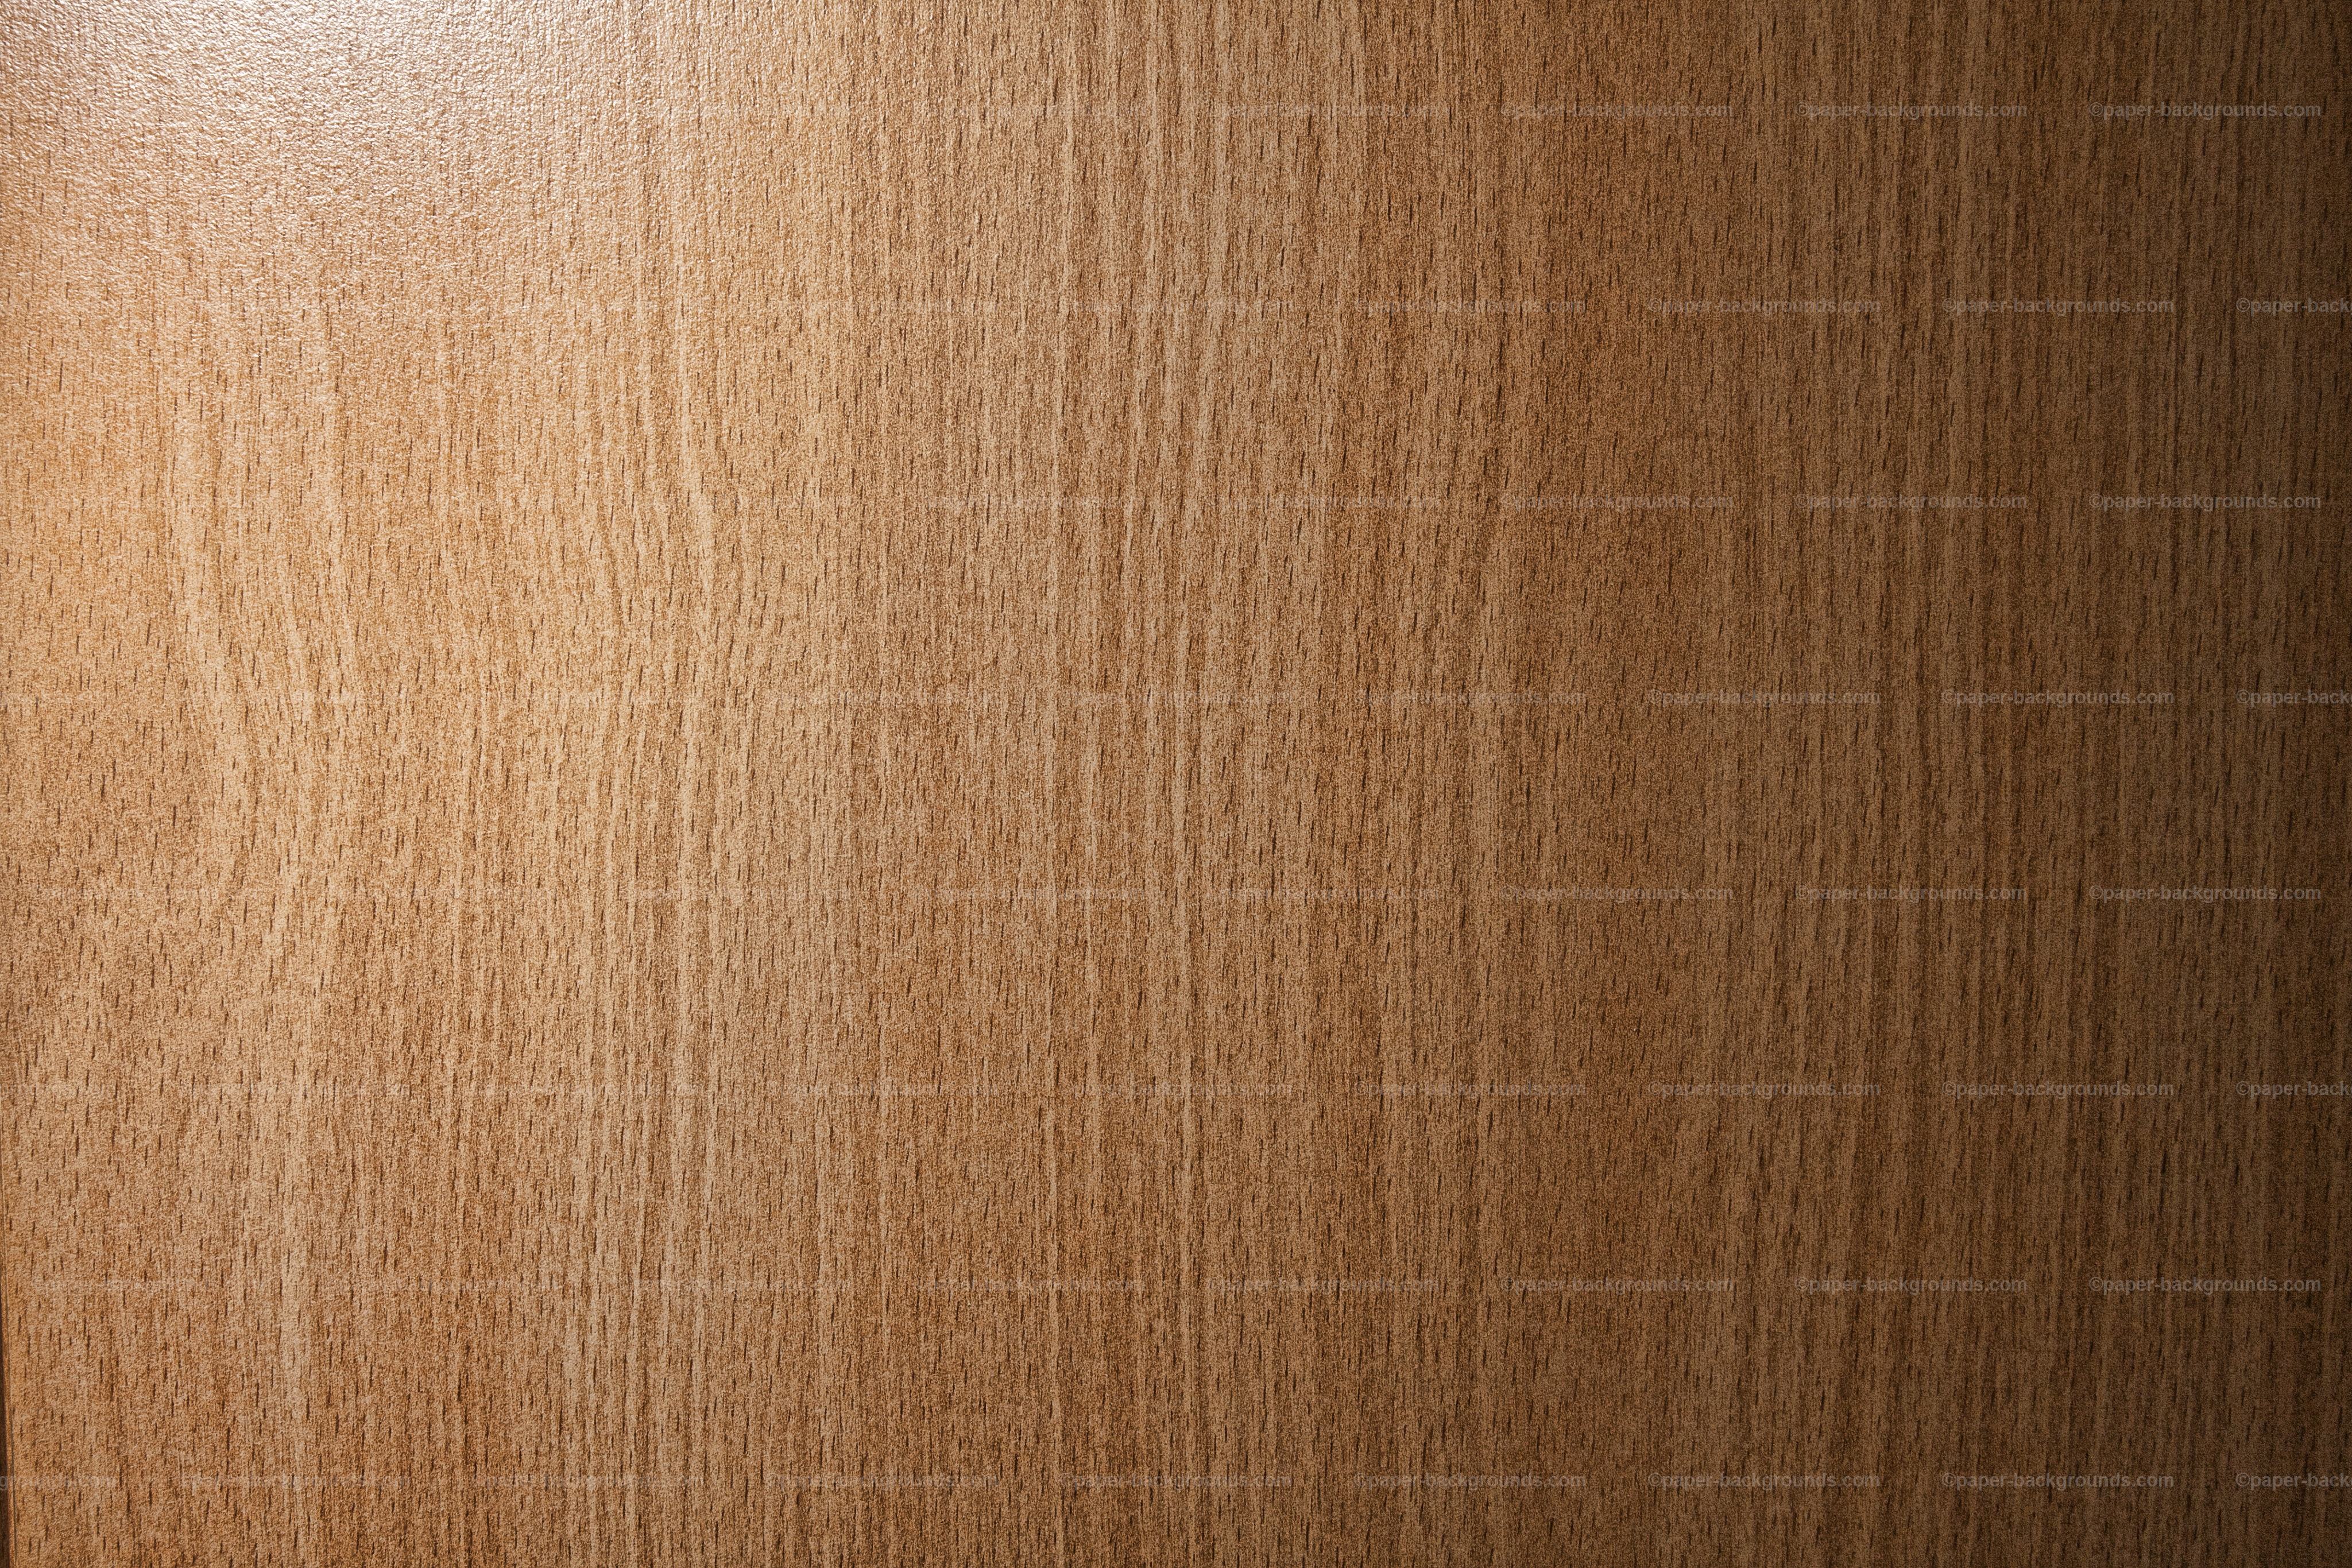 Paper Backgrounds Wood Furniture Texture Free